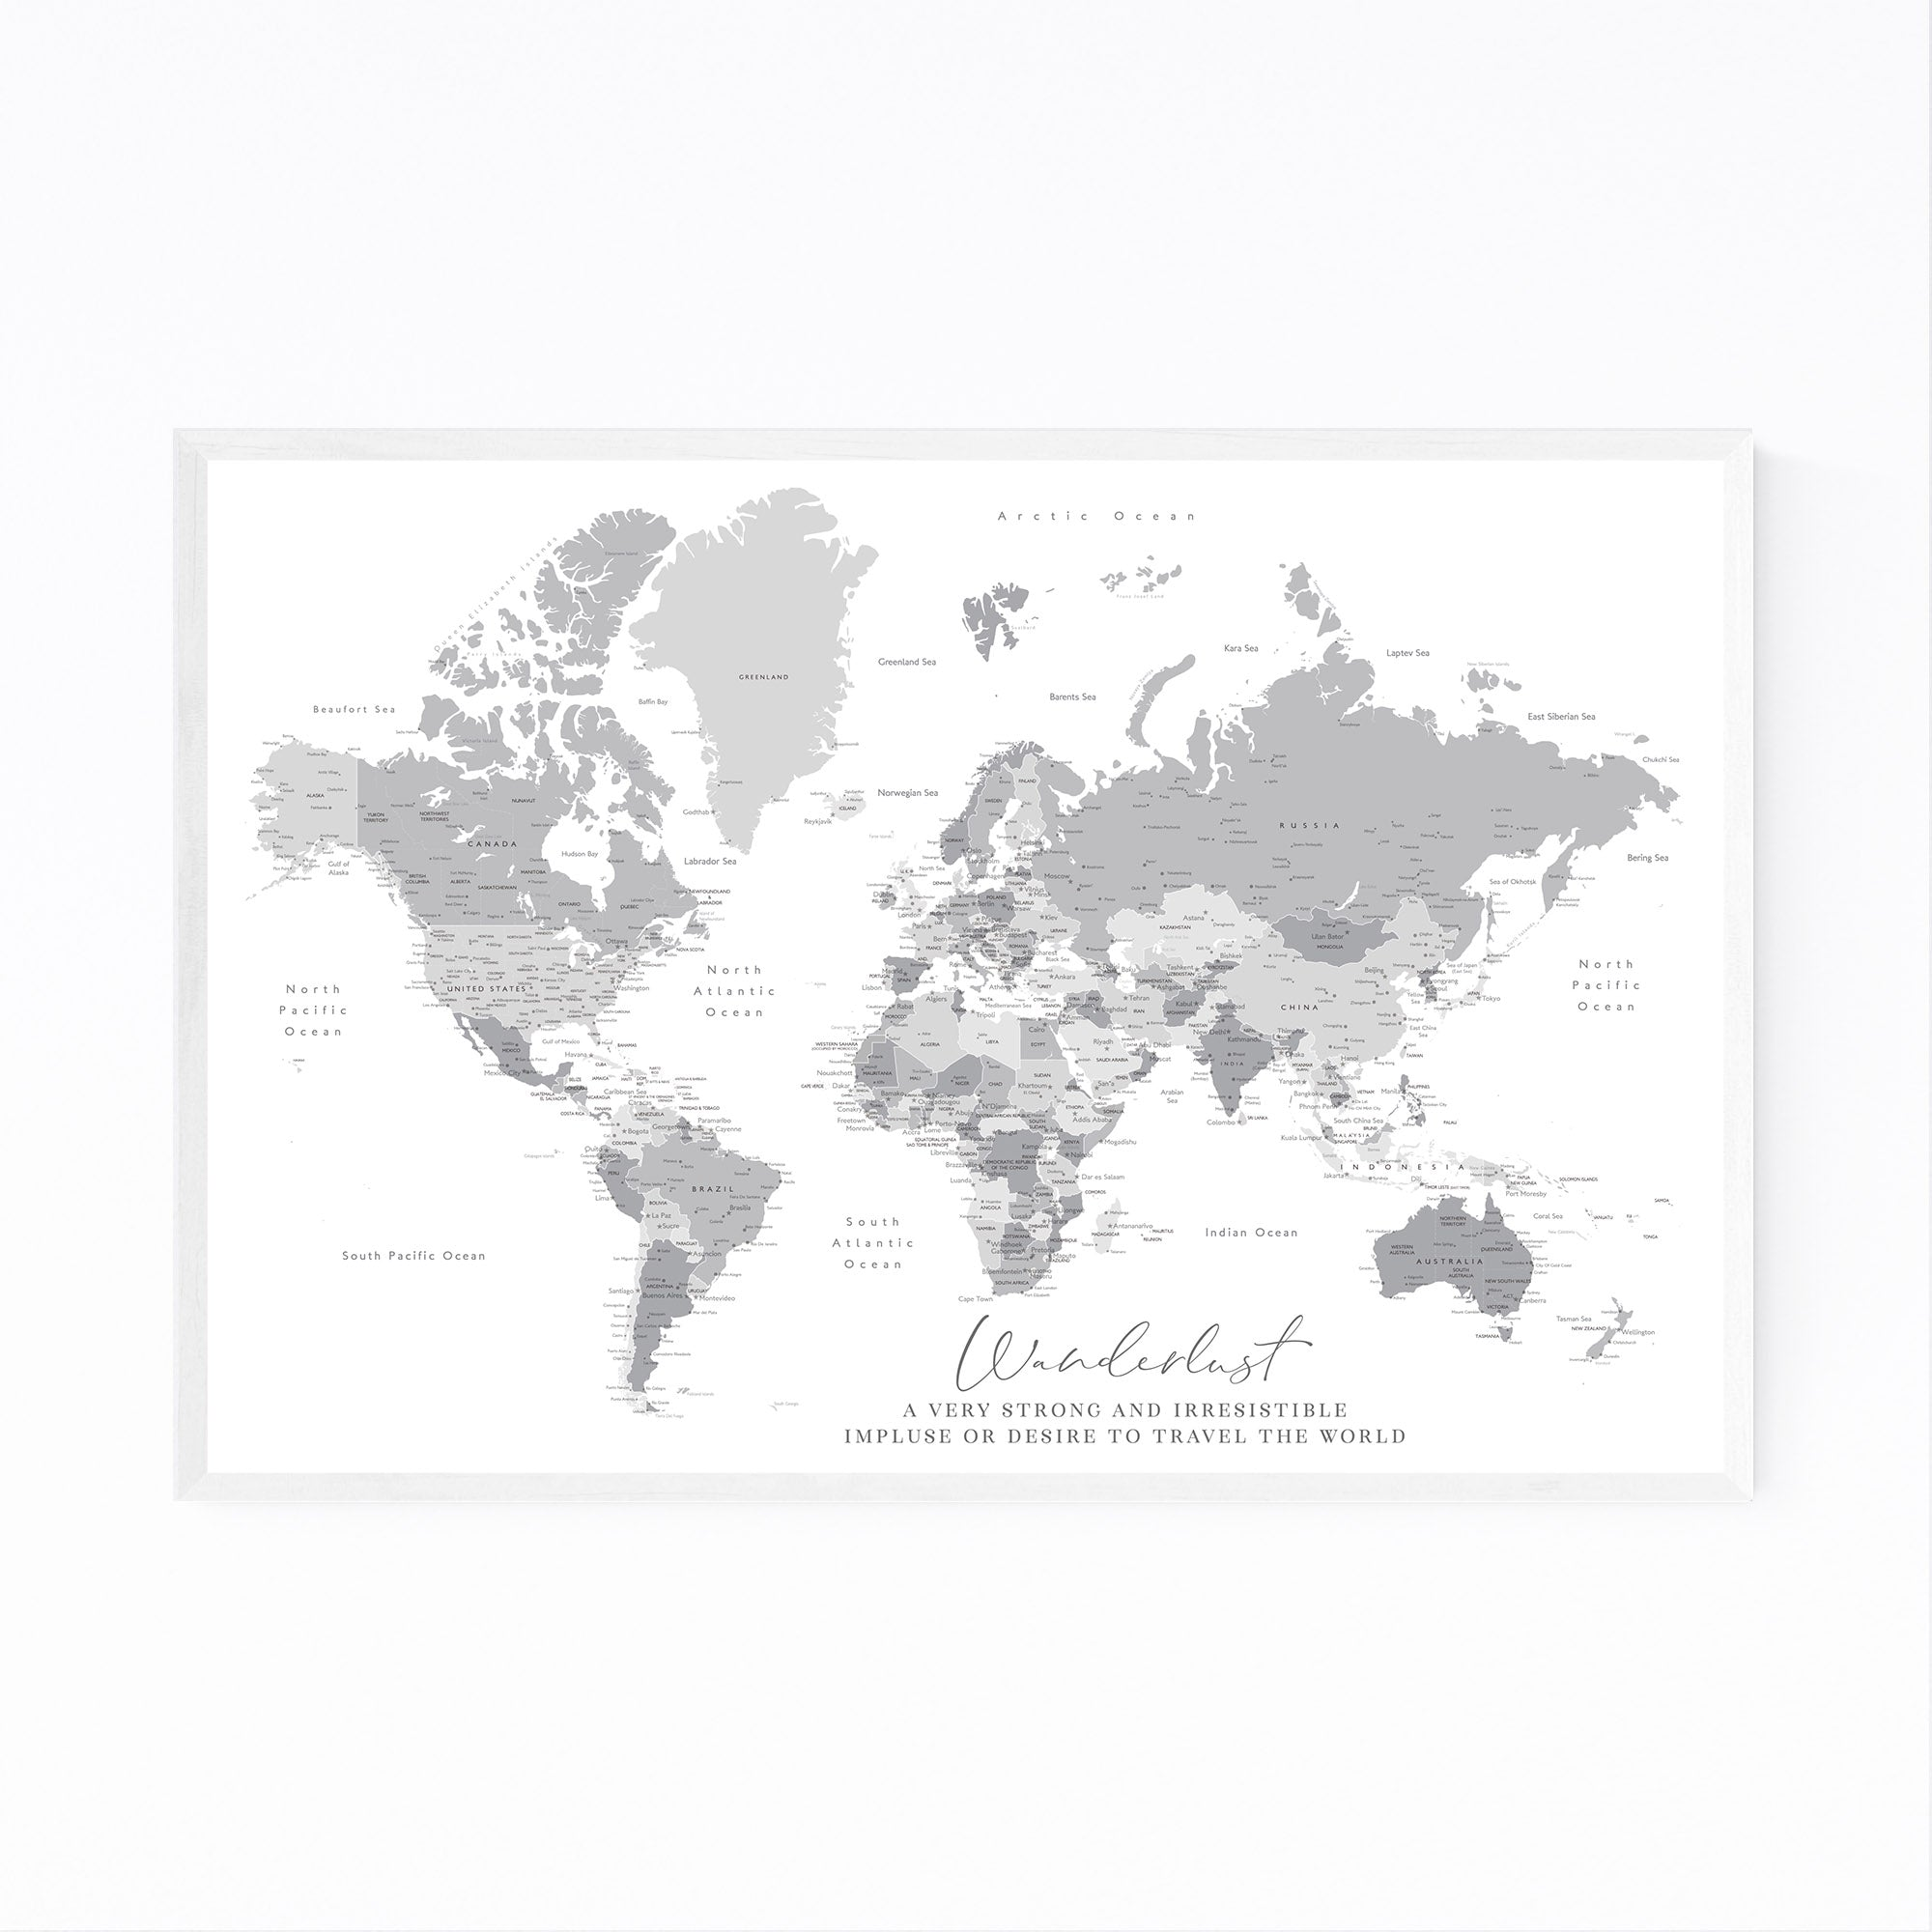 Wanderlust World Map with Cities in Gray on map of austria with cities, delaware map with cities, australia with cities geography, australia map of cities and parks, australia airports, large map of australia with cities, australia major map capital cities, australia cities and towns, physical map of germany with cities, australia flag, australia water current location latitude and longitude, brazil map with cities,